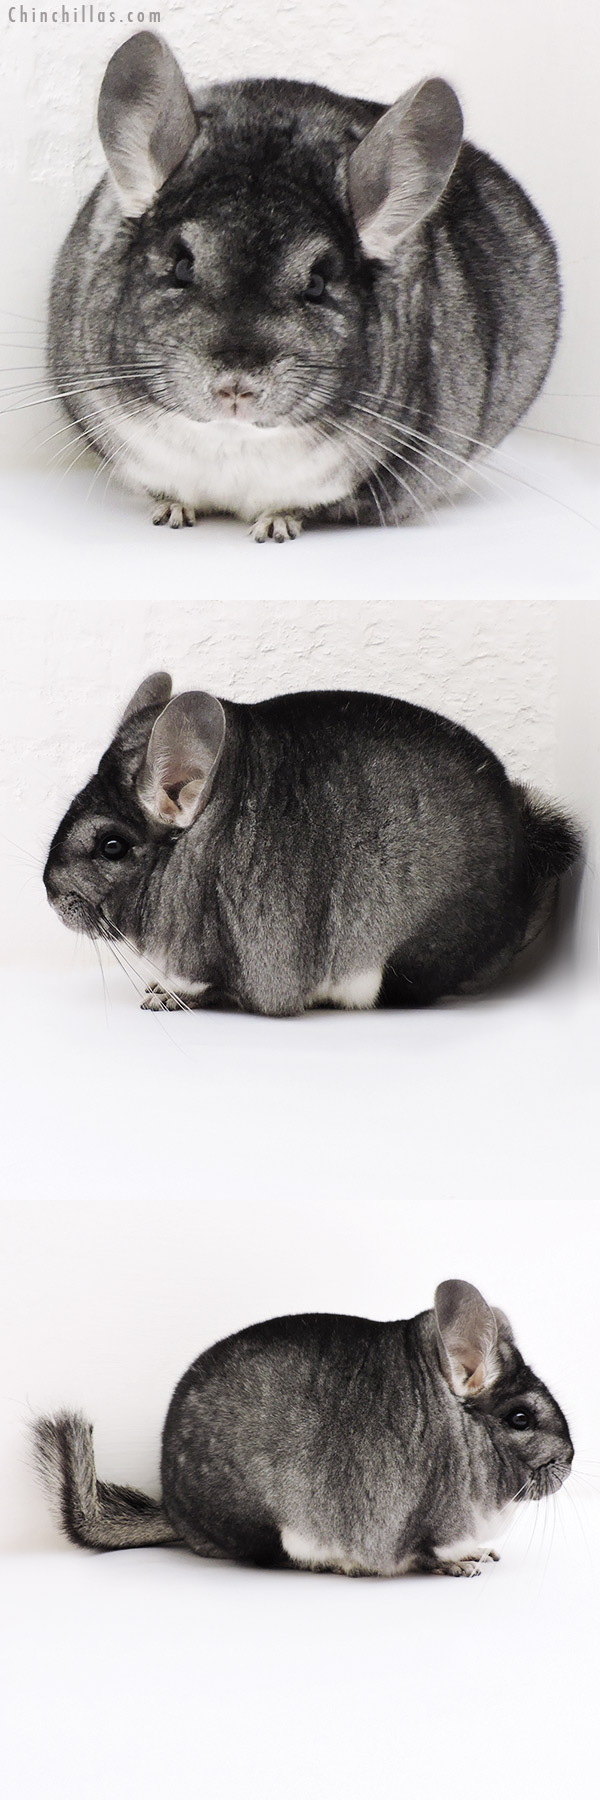 17125 Blocky Premium Production Quality Standard Female Chinchilla